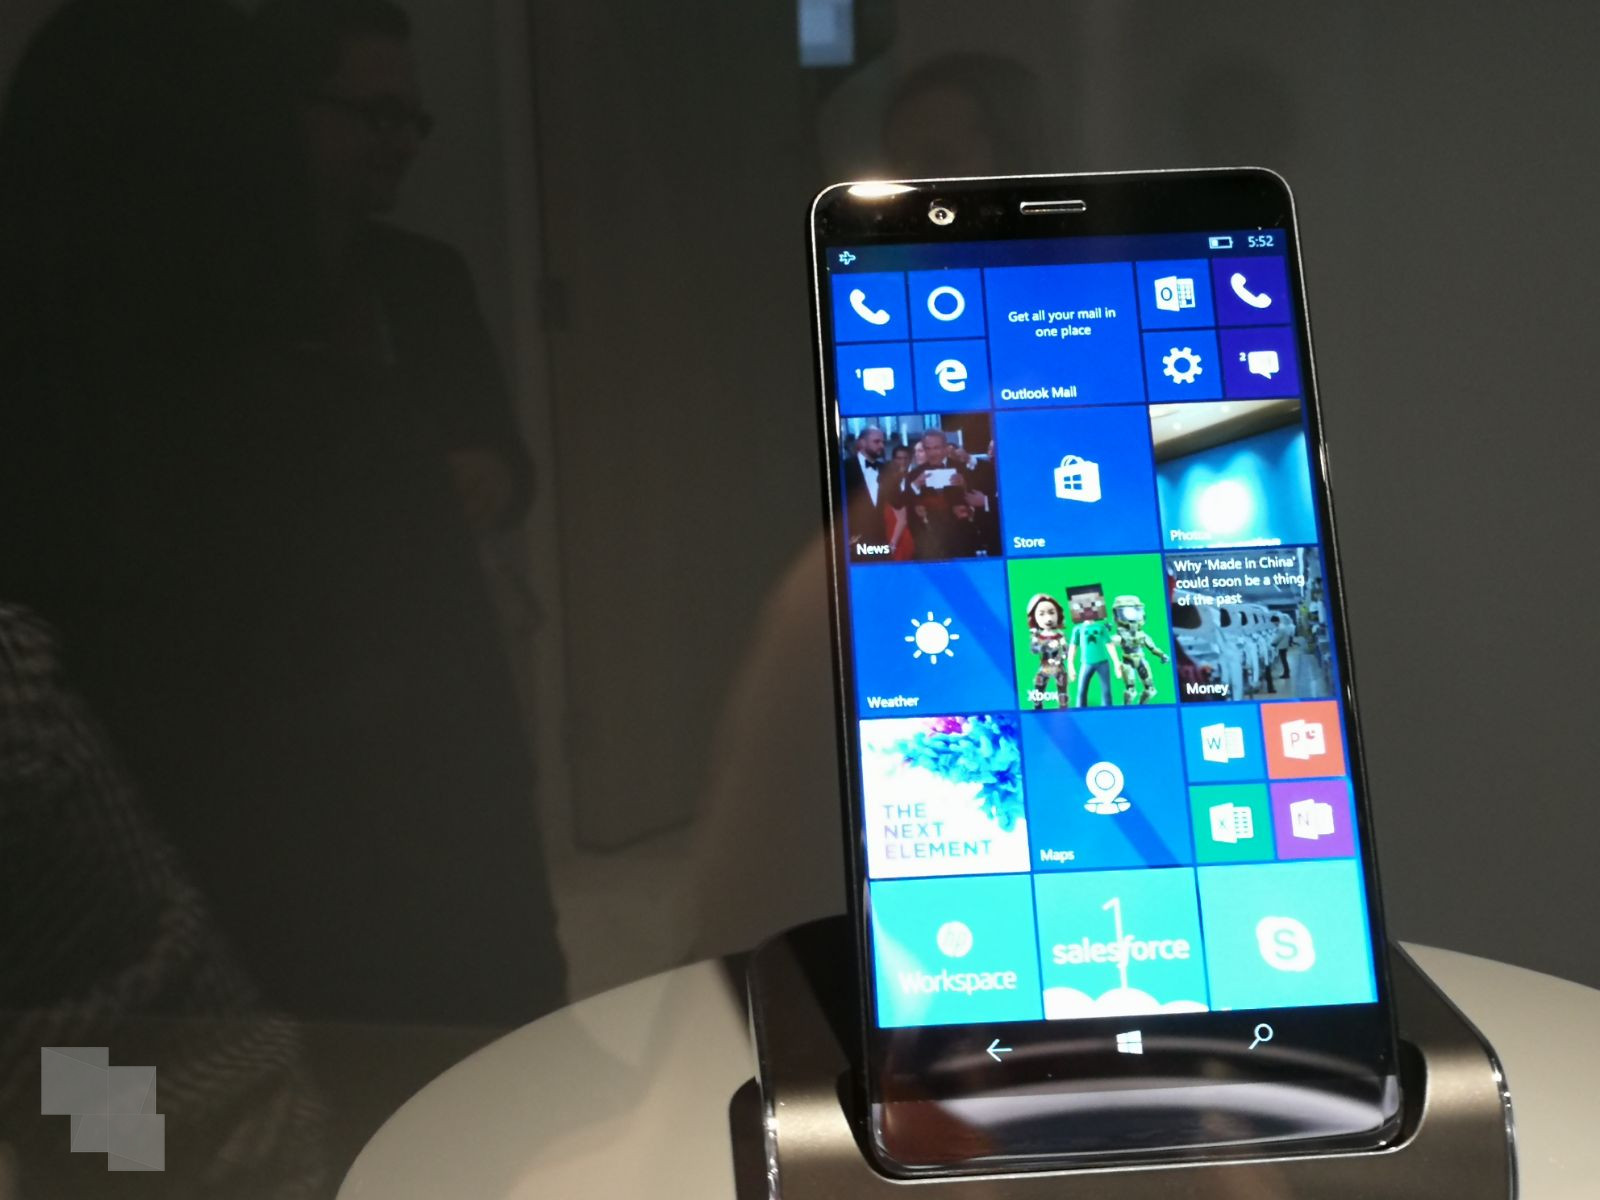 Futuro modelo HP con Windows 10 Mobile